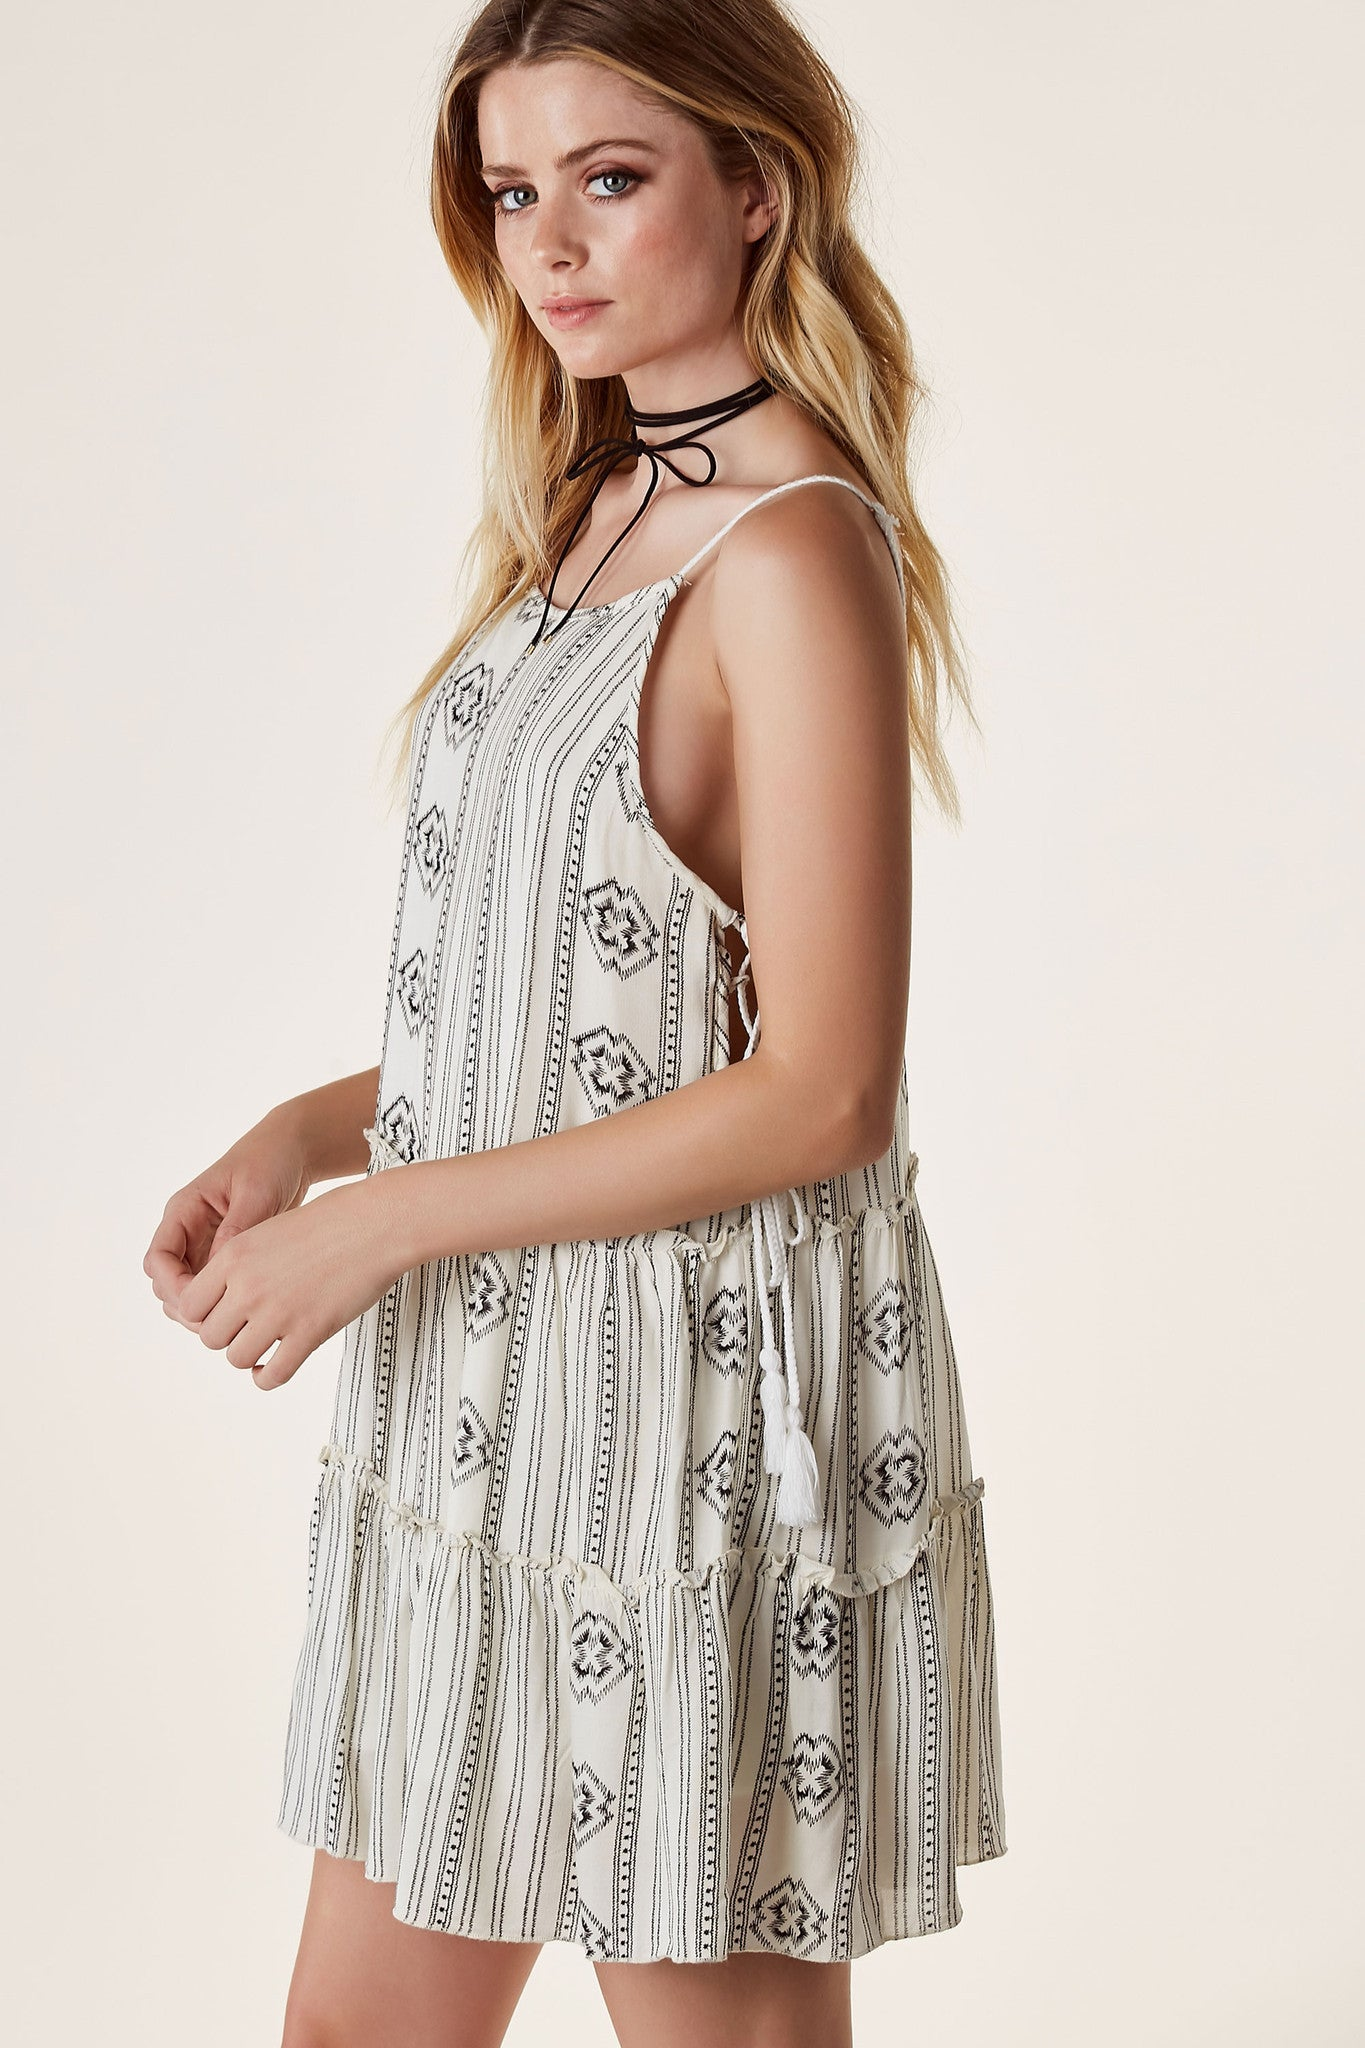 Flowy sleeveless printed dress with braided straps and lace up detailing on each side.